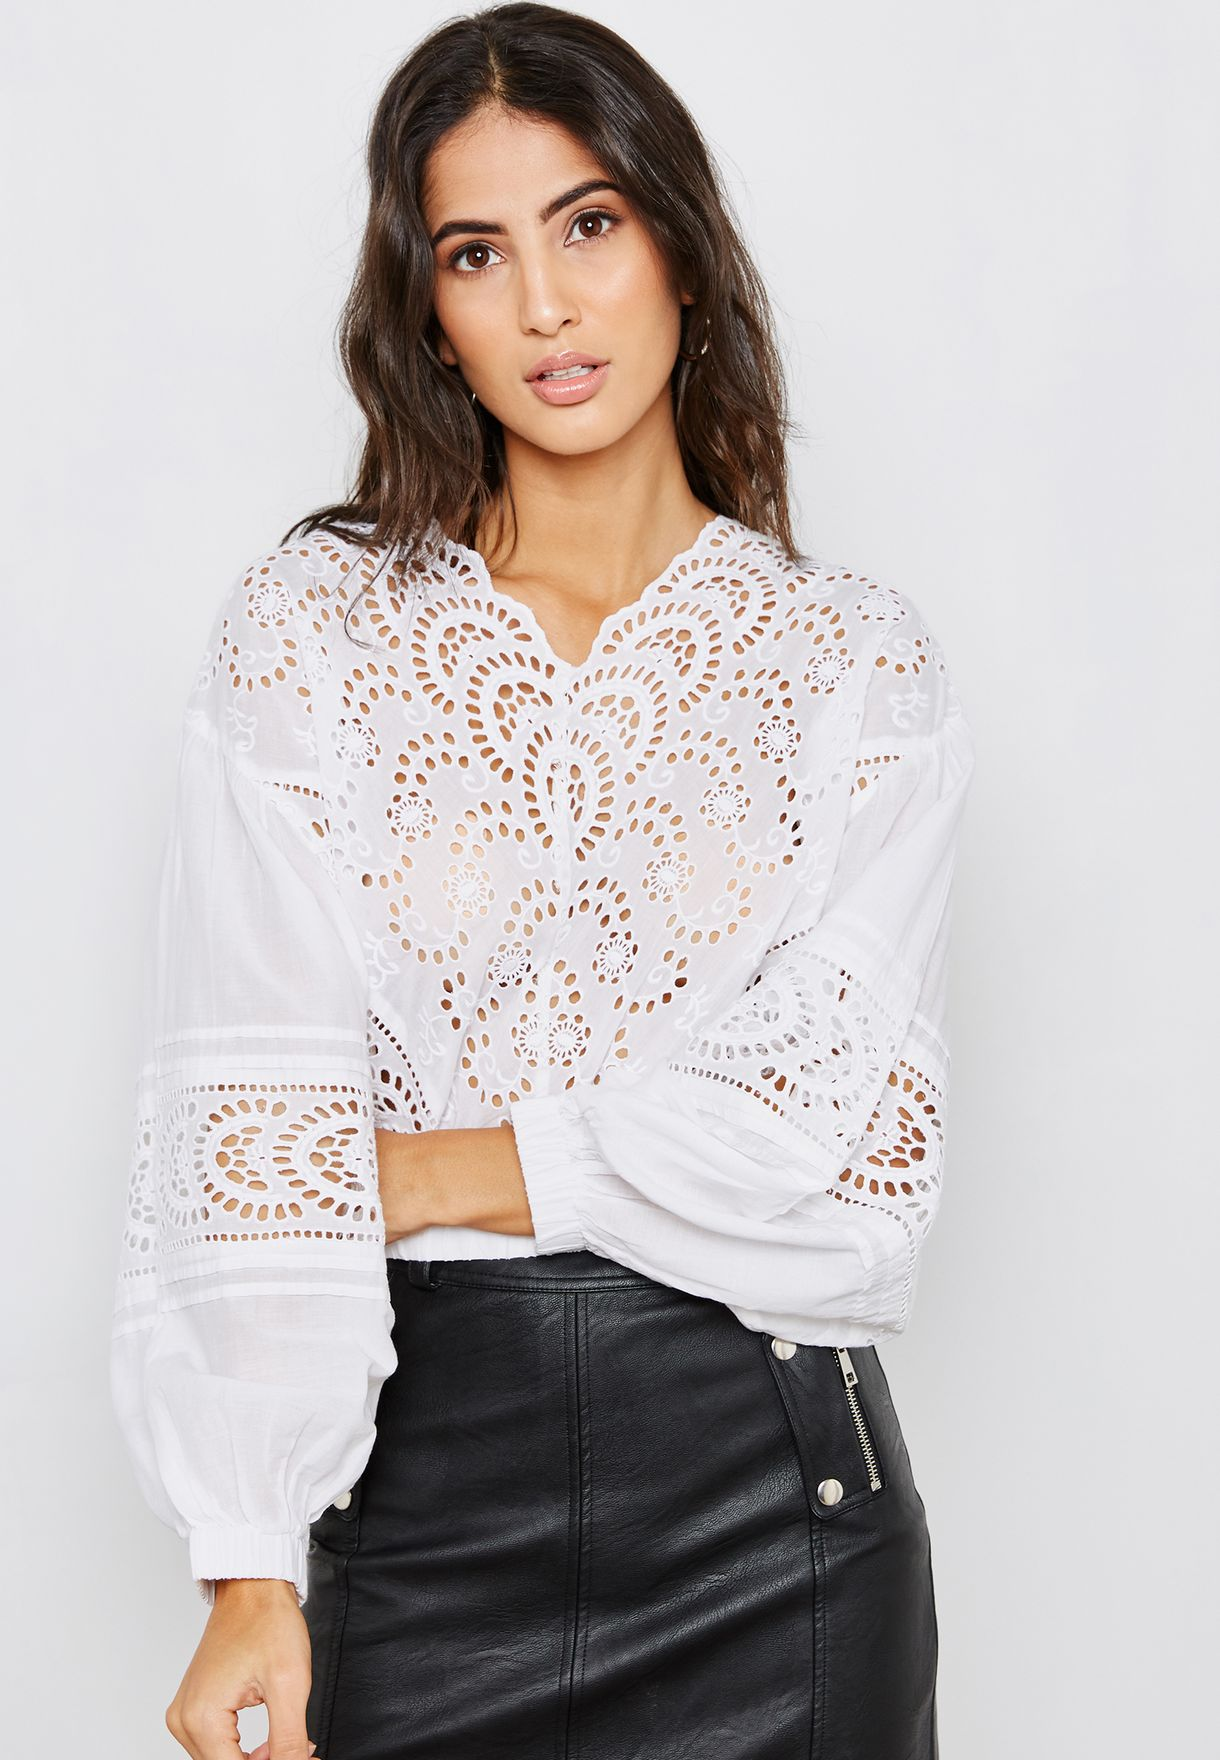 83543934fbba4e Shop Topshop white Broderie Long Sleeve Top 13P01PIVR for Women in ...